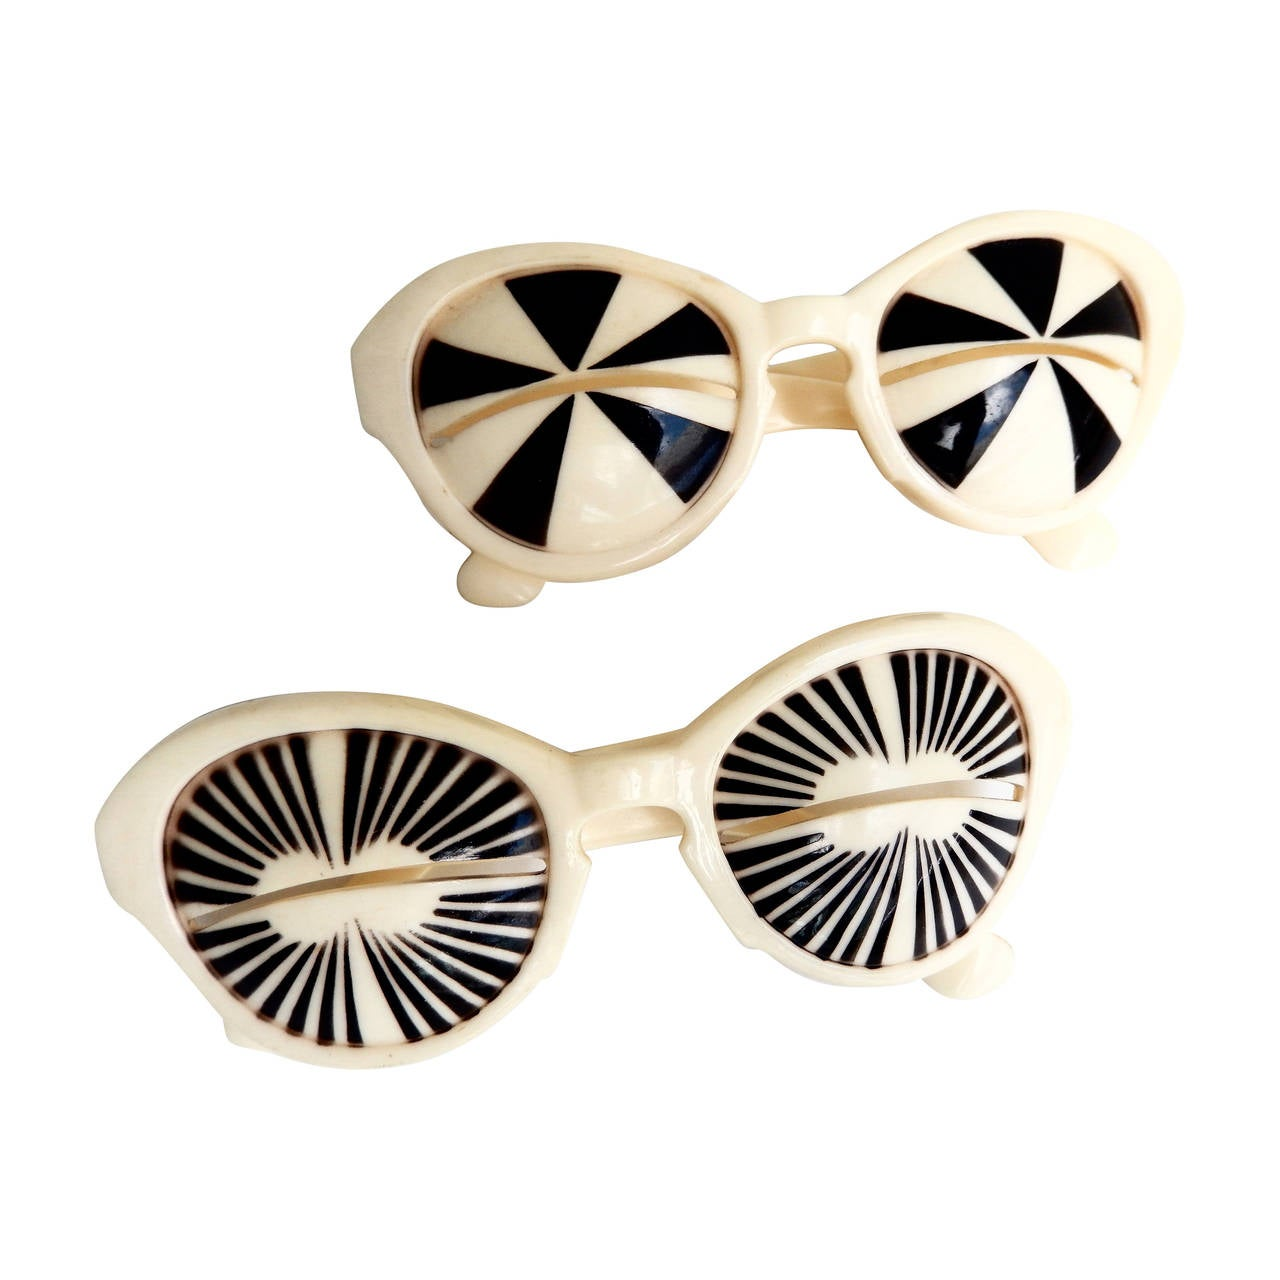 282bc941483 Iconic 1960s Mod Op Art Sunglasses Italy at 1stdibs